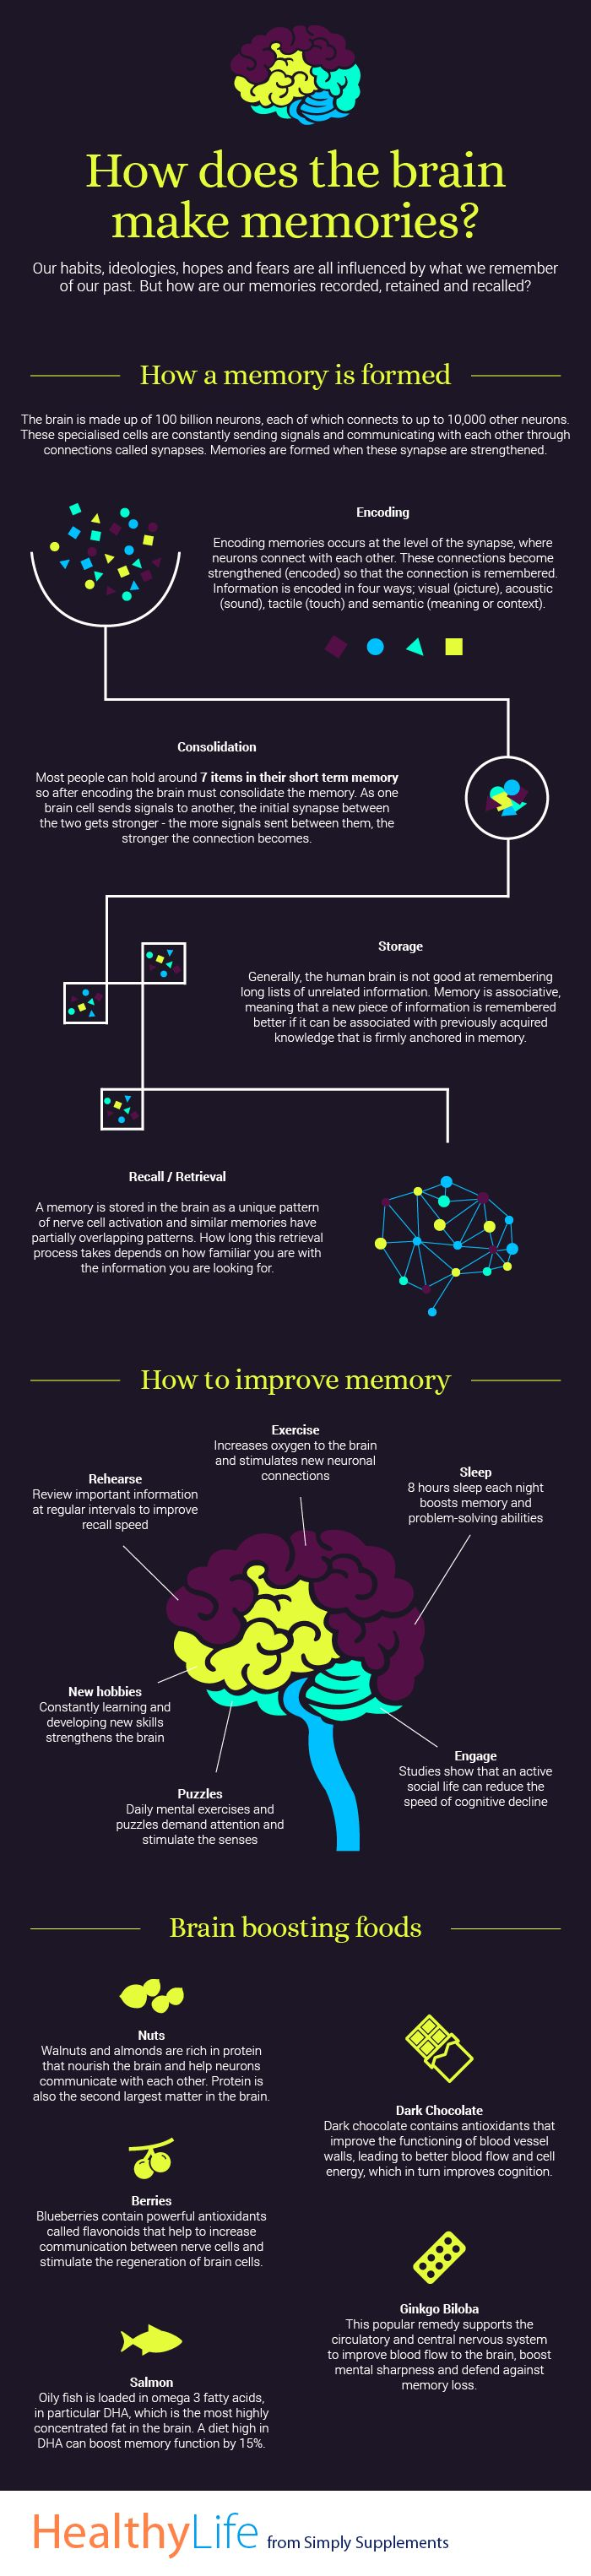 Ever wondered how the brain makes, stores and recalls memories? Our latest infographic explains just that! Hope you enjoy.